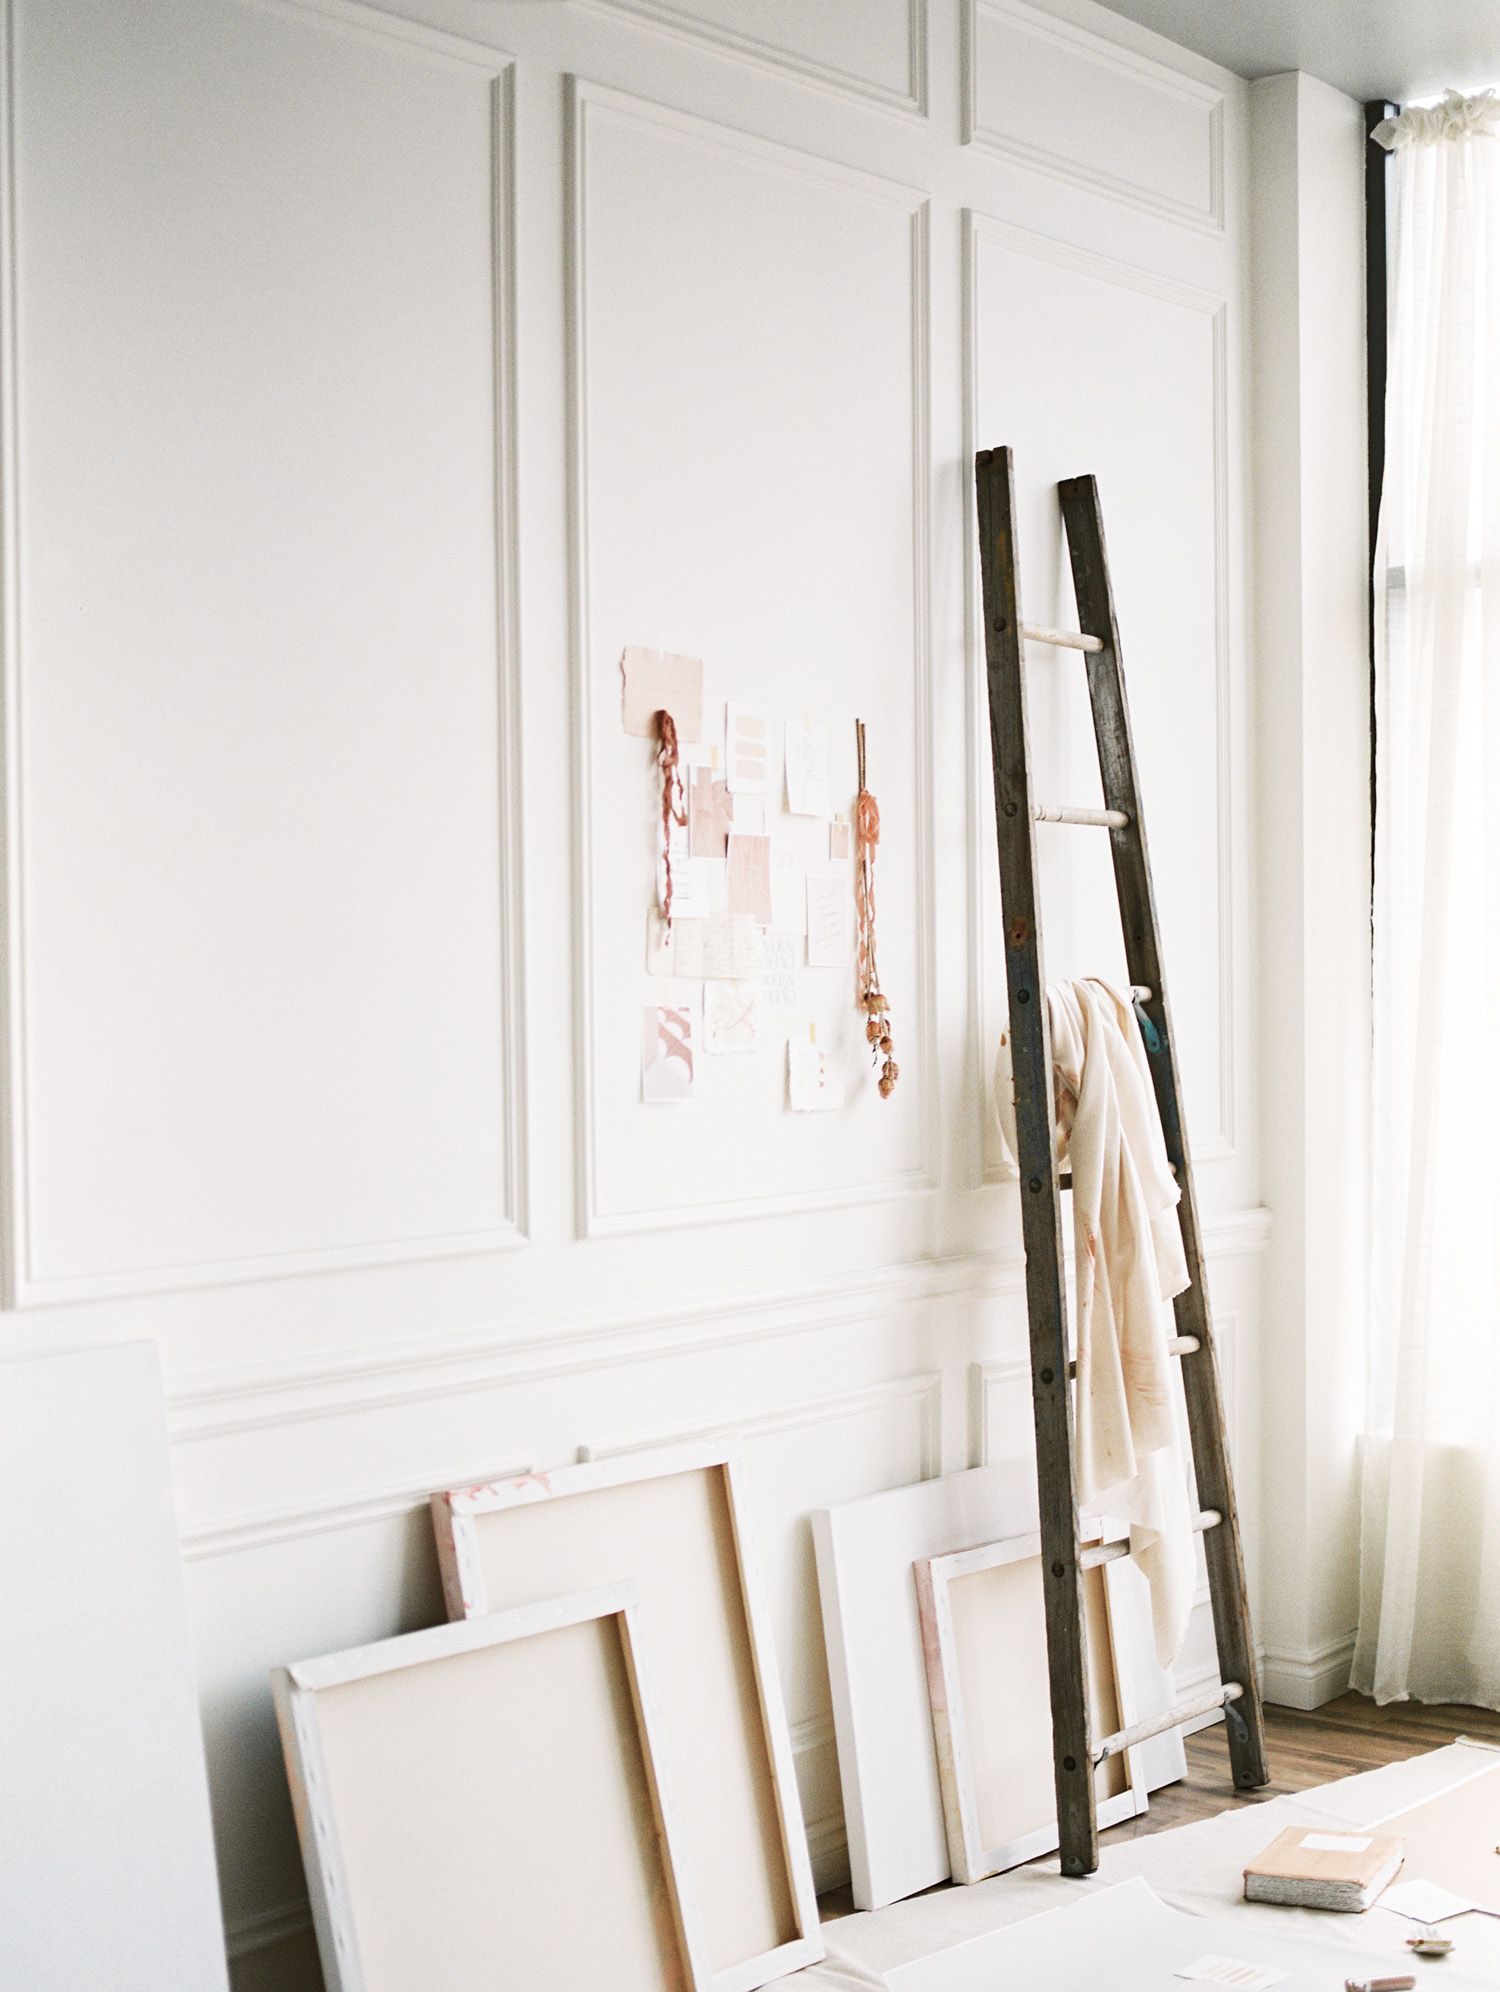 a painter aesthetic art studio space created for a brand photoshoot at Tribe Detroit in Michigan